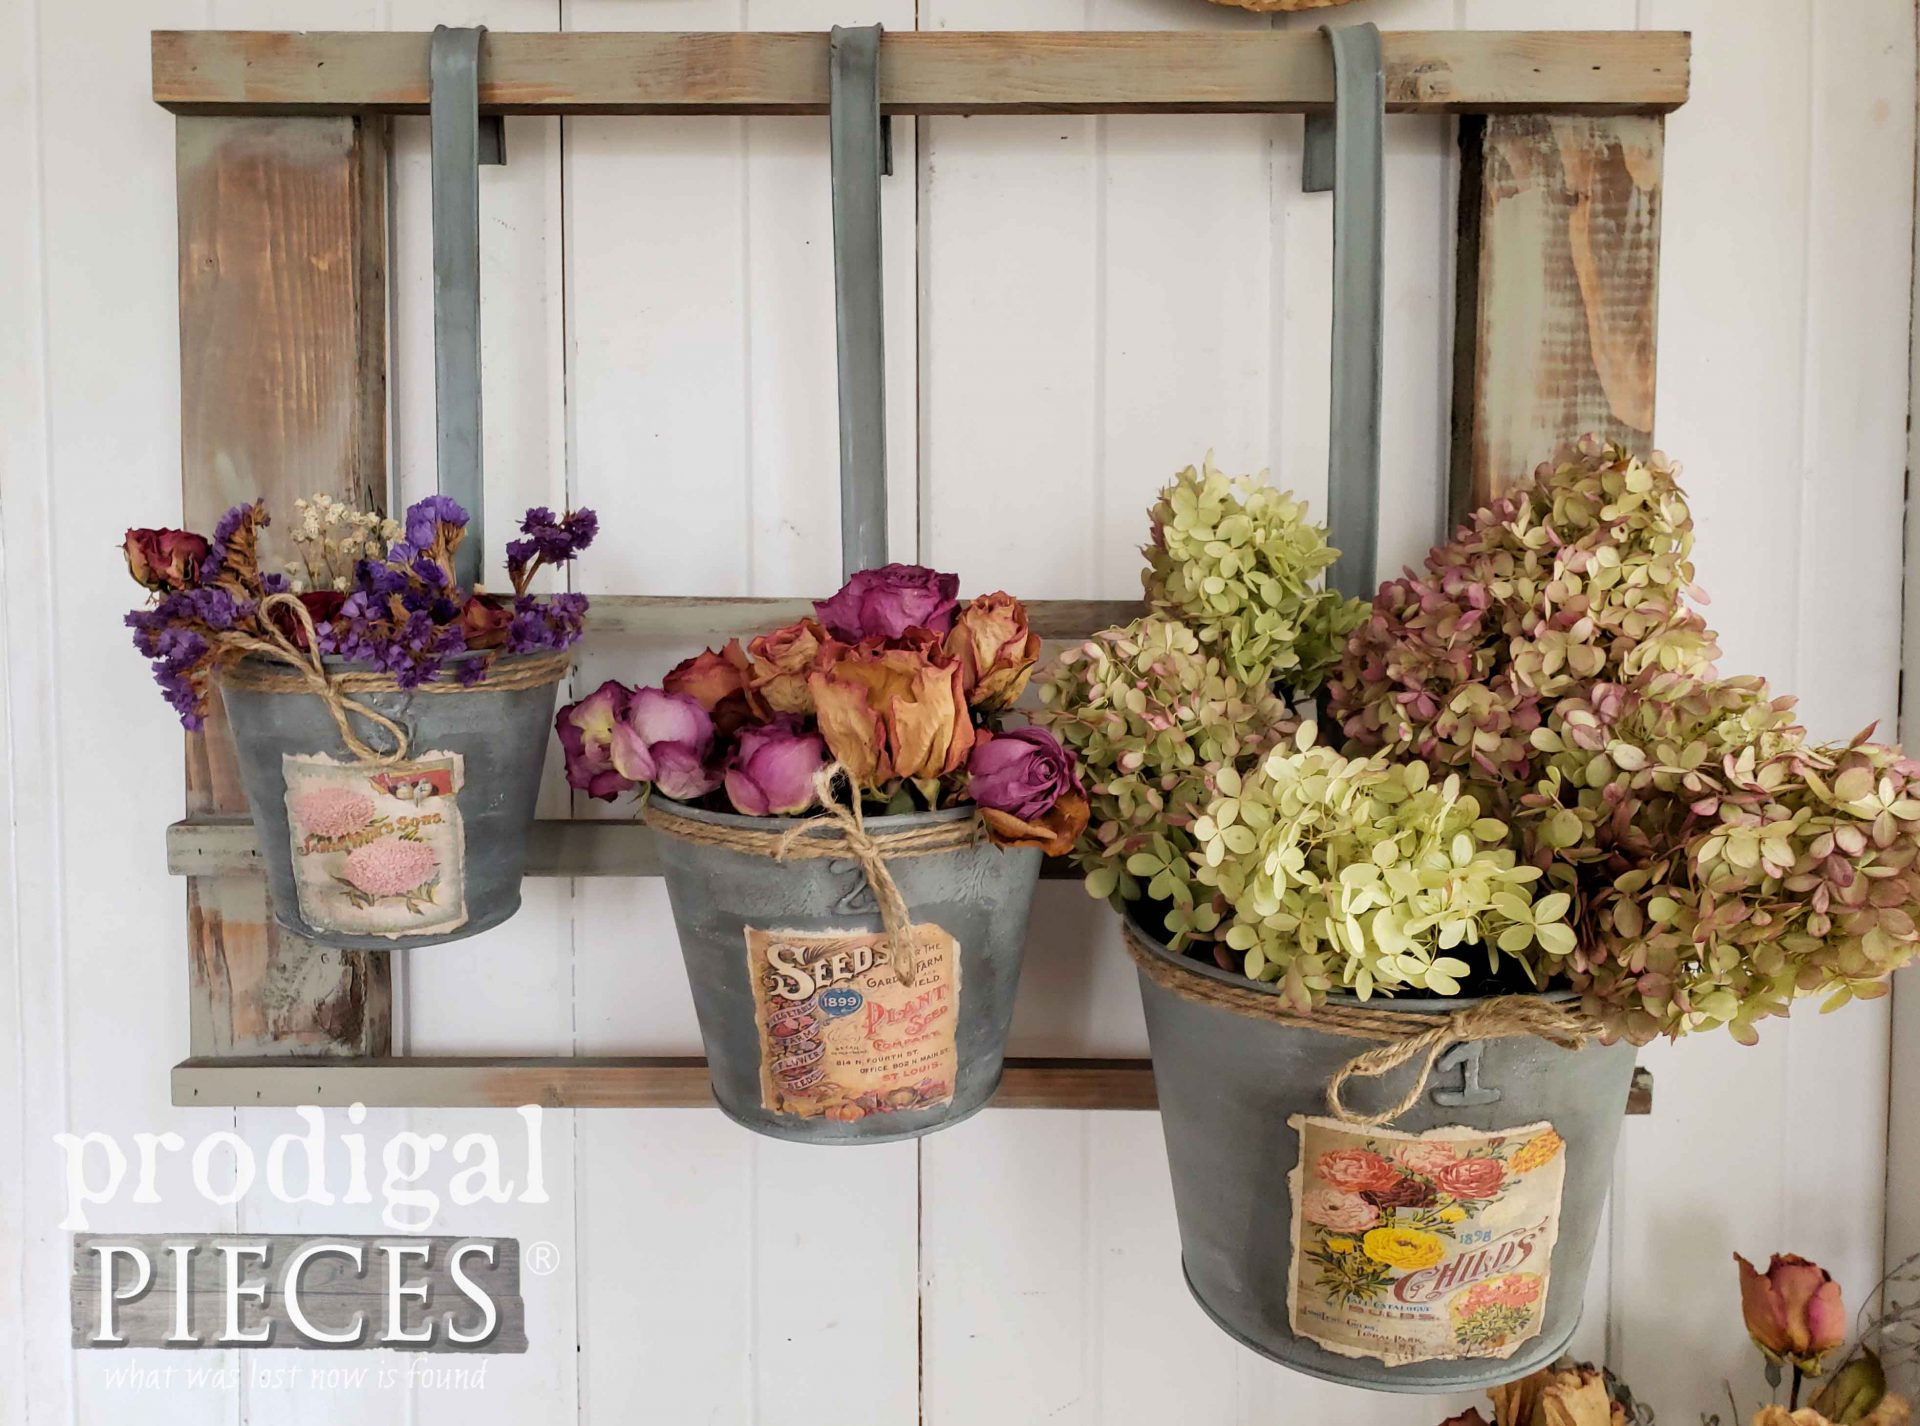 DIY Dried Floral Arrangements in Upcycled Christmas Decor by Larissa of Prodigal Pieces | prodigalpieces.com #prodigalpieces #farmhouse #diy #home #homedecor